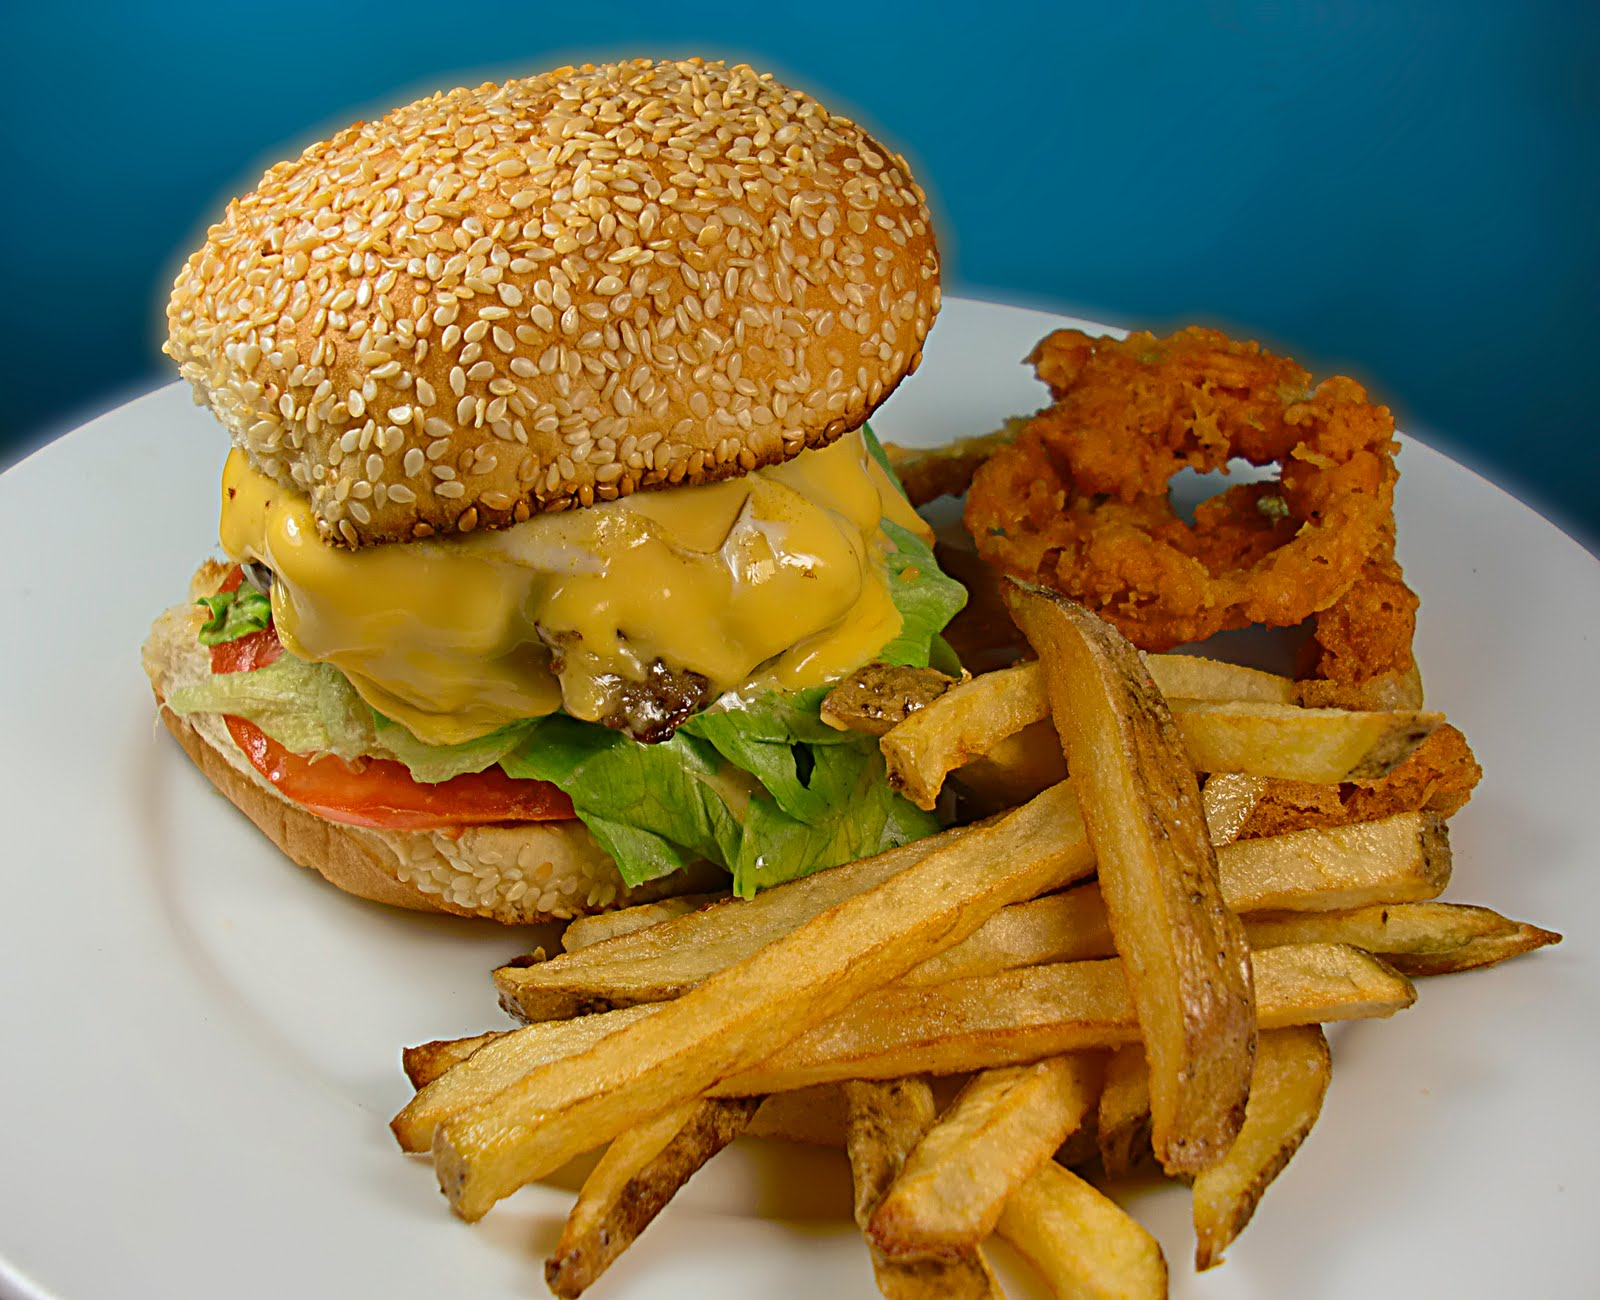 ChezWhat?: THIS is an Angus burger plus a winner of 10 pounds of grass fed beef